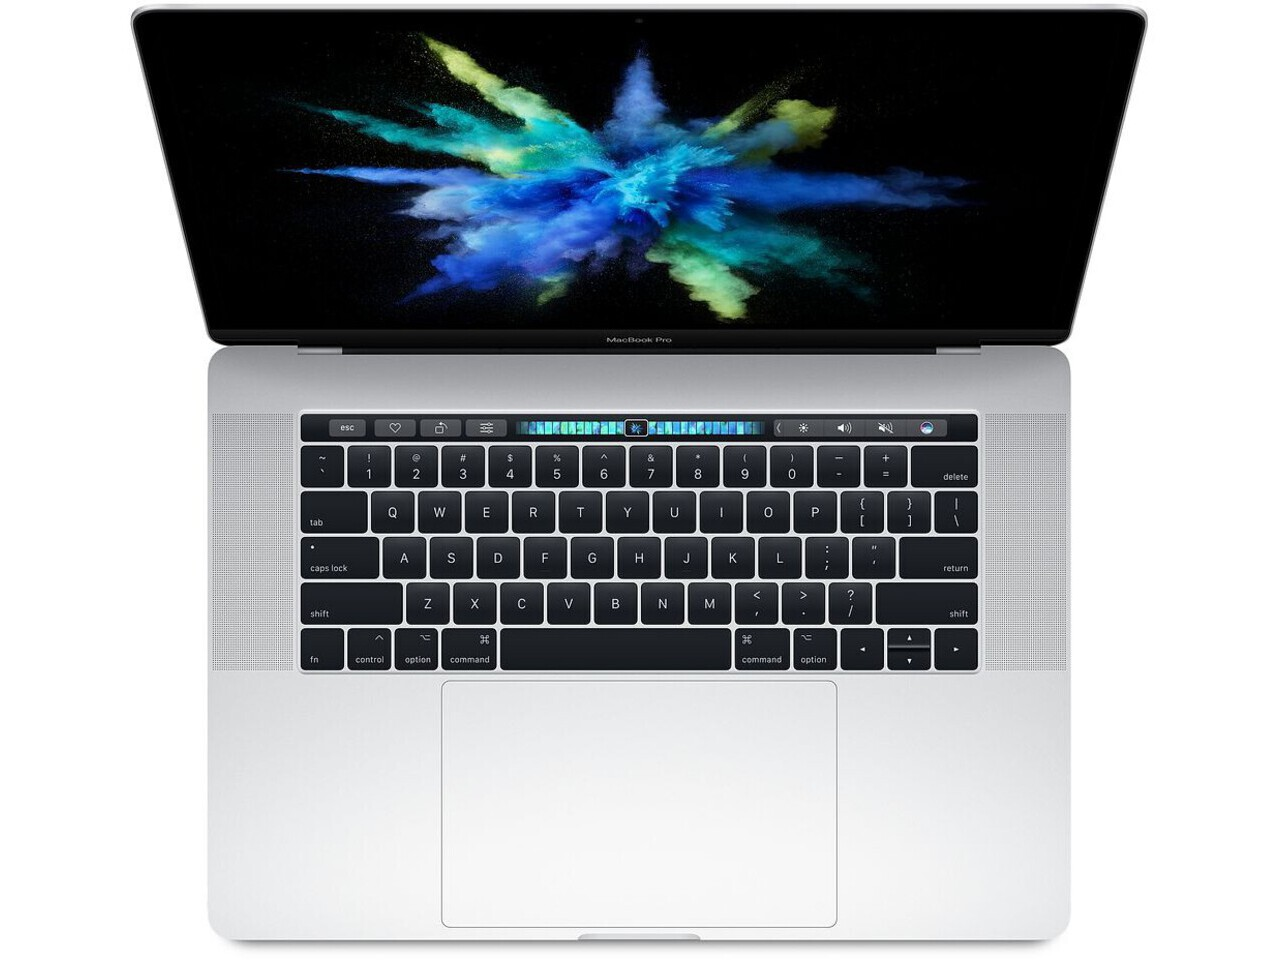 macbook pro 15 inch touch bar 2019 silver